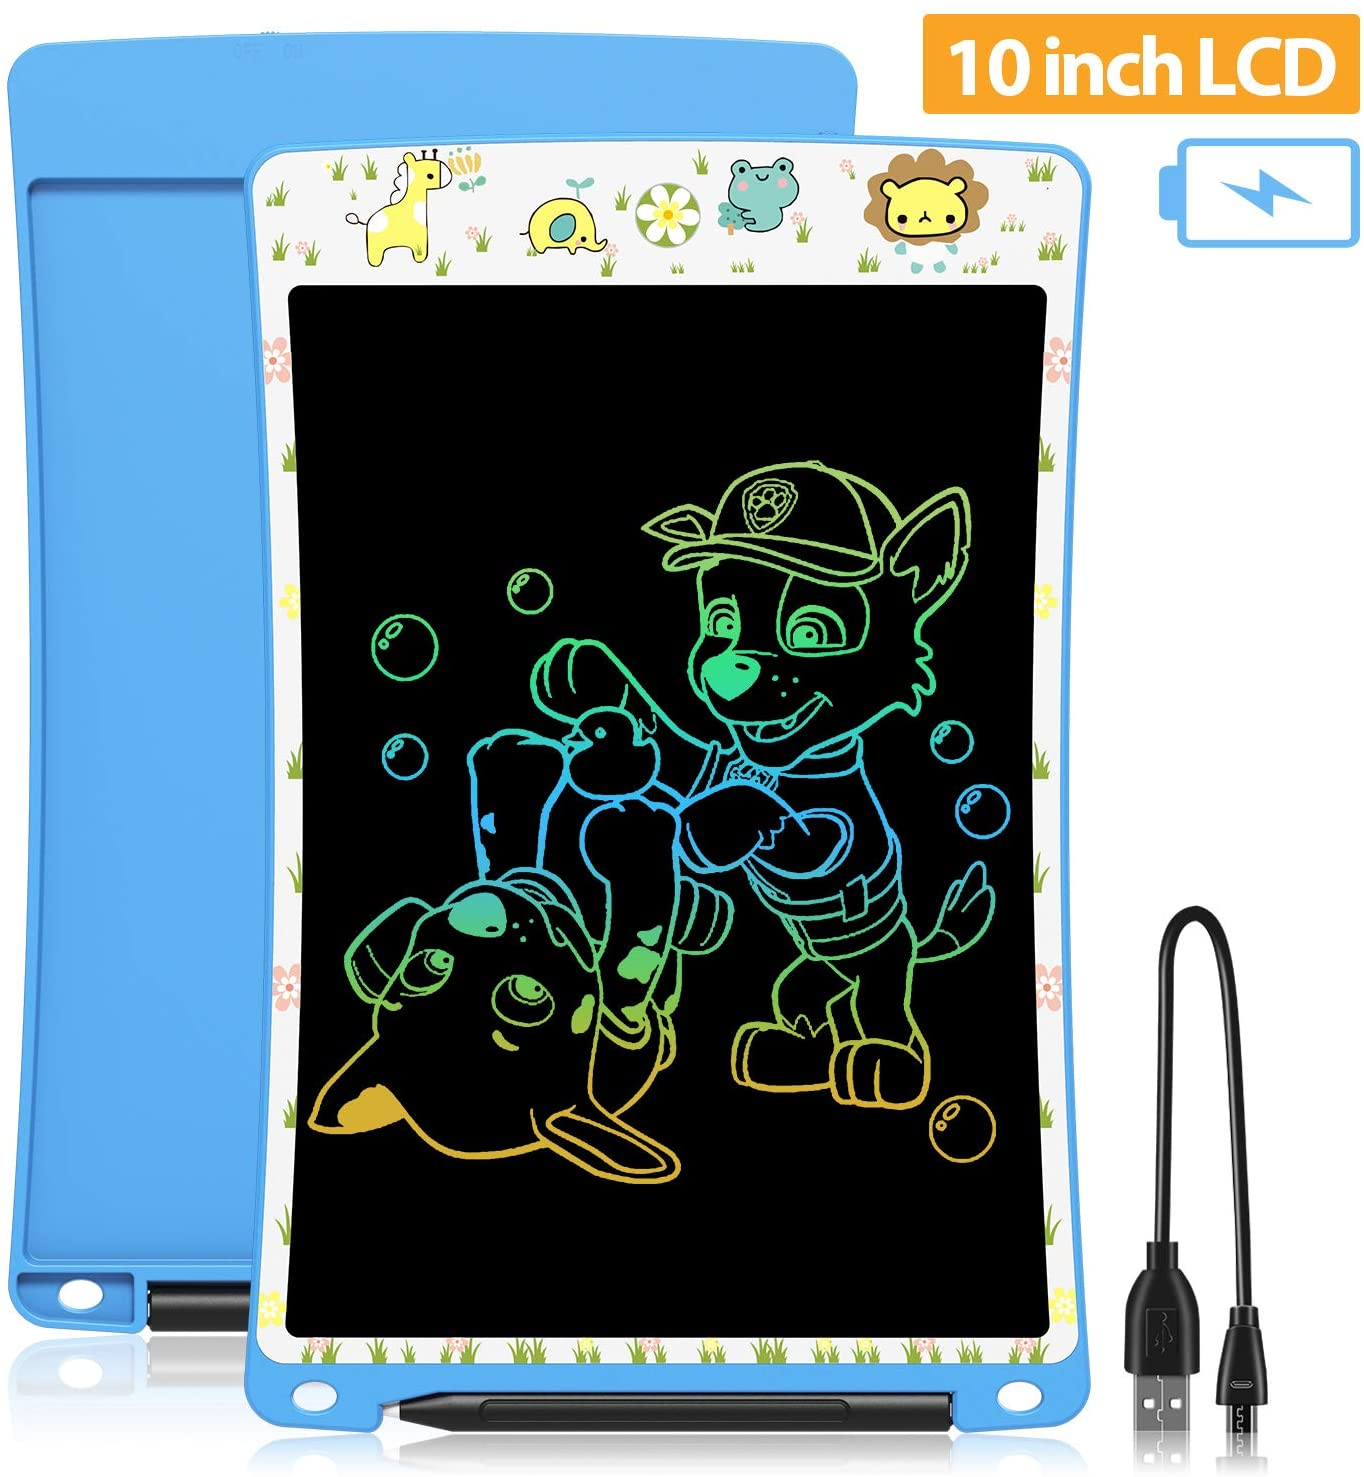 Classier: Buy WOBEECO WOBEECO Rechargeable Writing Pad Light Doodle Board, Scribble and Play Color Electronic Drawing Tablet for Kids Ages 3+(Blue)